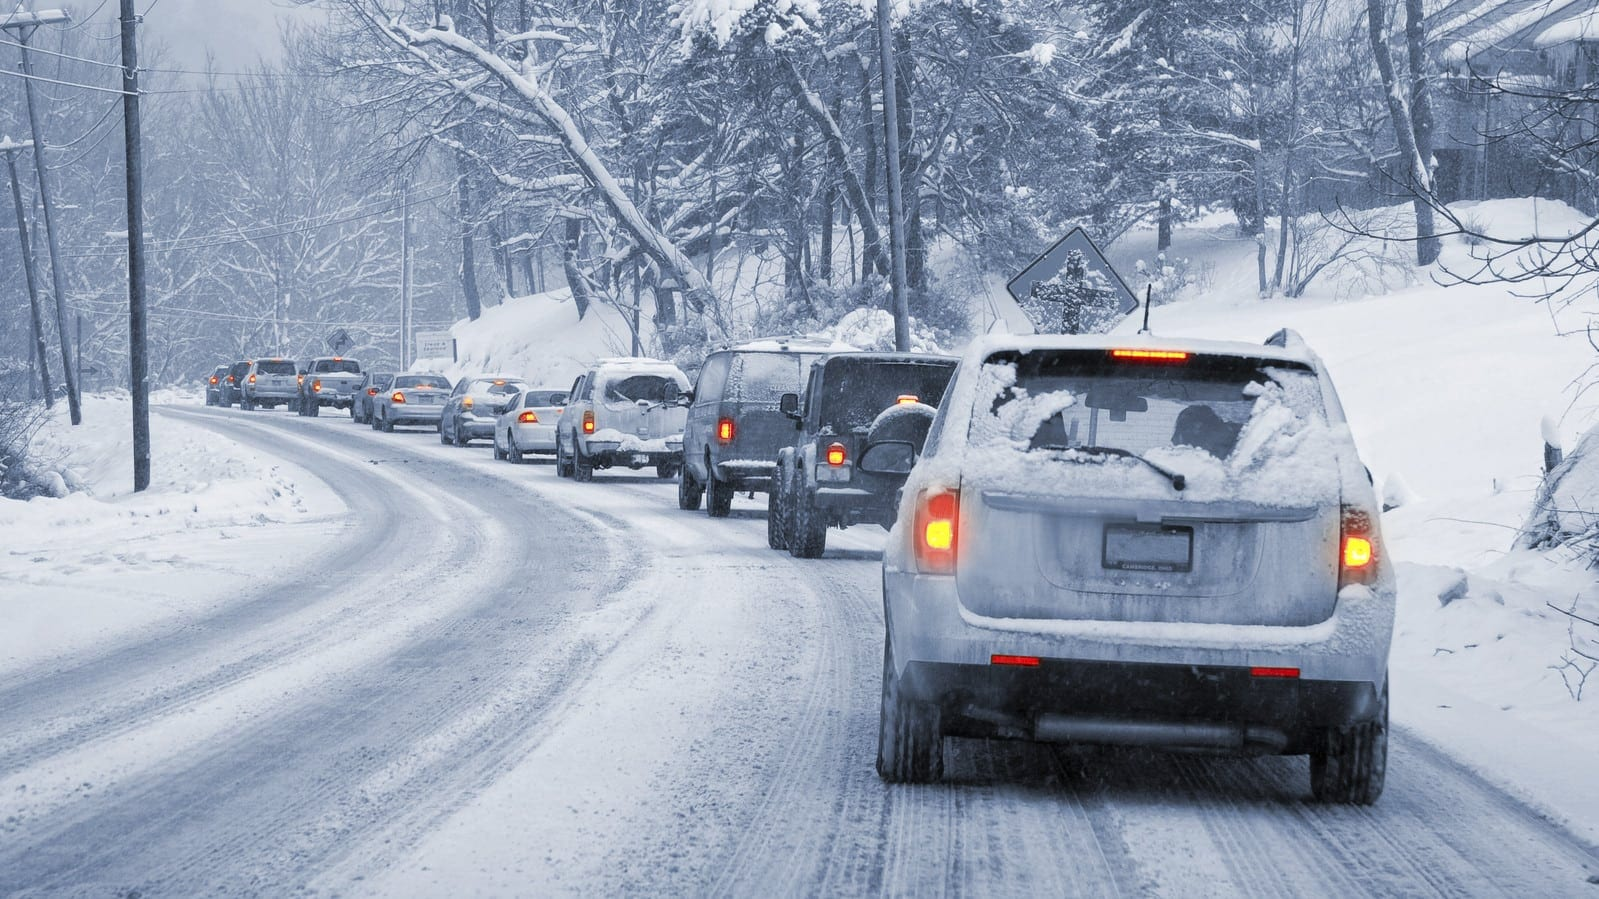 Traffic Jam During A Snowstorm Stock Photo